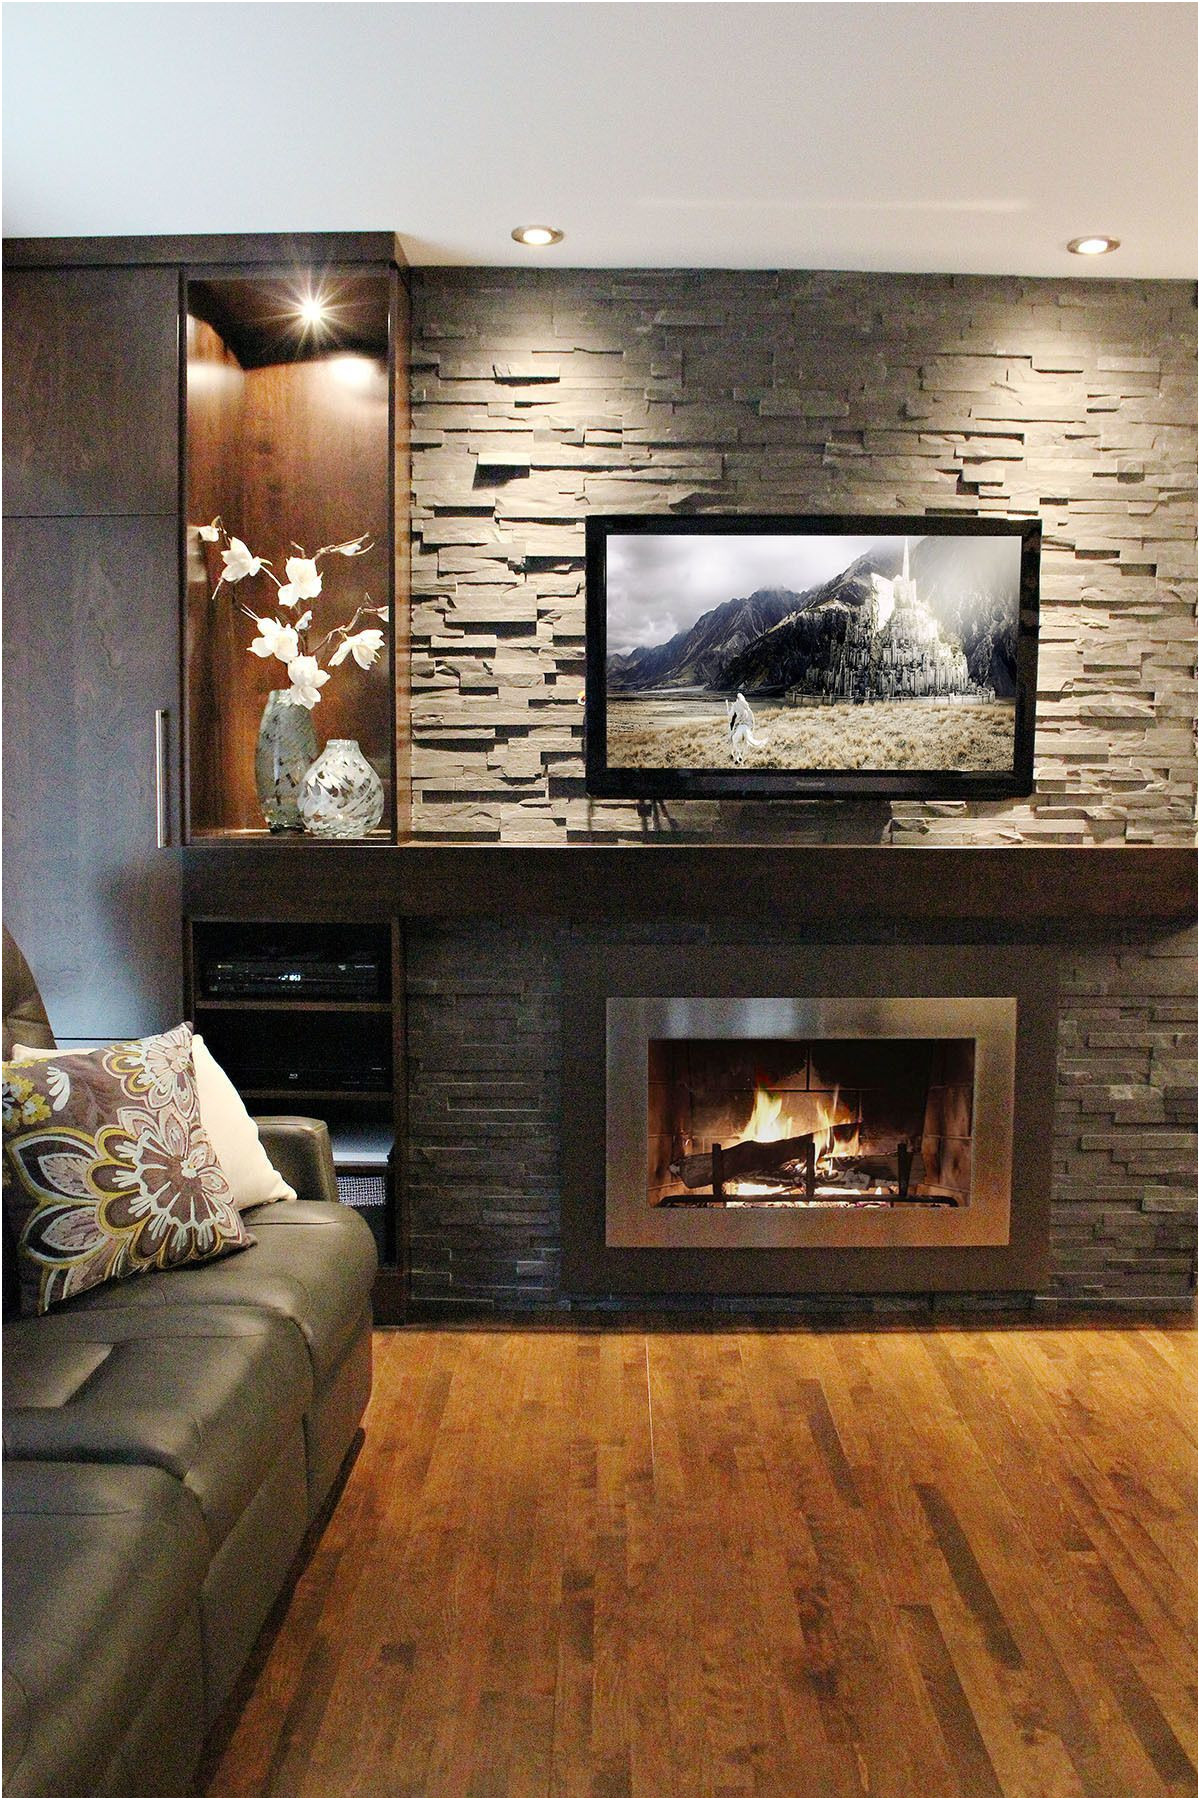 Fireplace Ideas Modern Awesome 30 Incredible Fireplace Ideas for Your Best Home Design